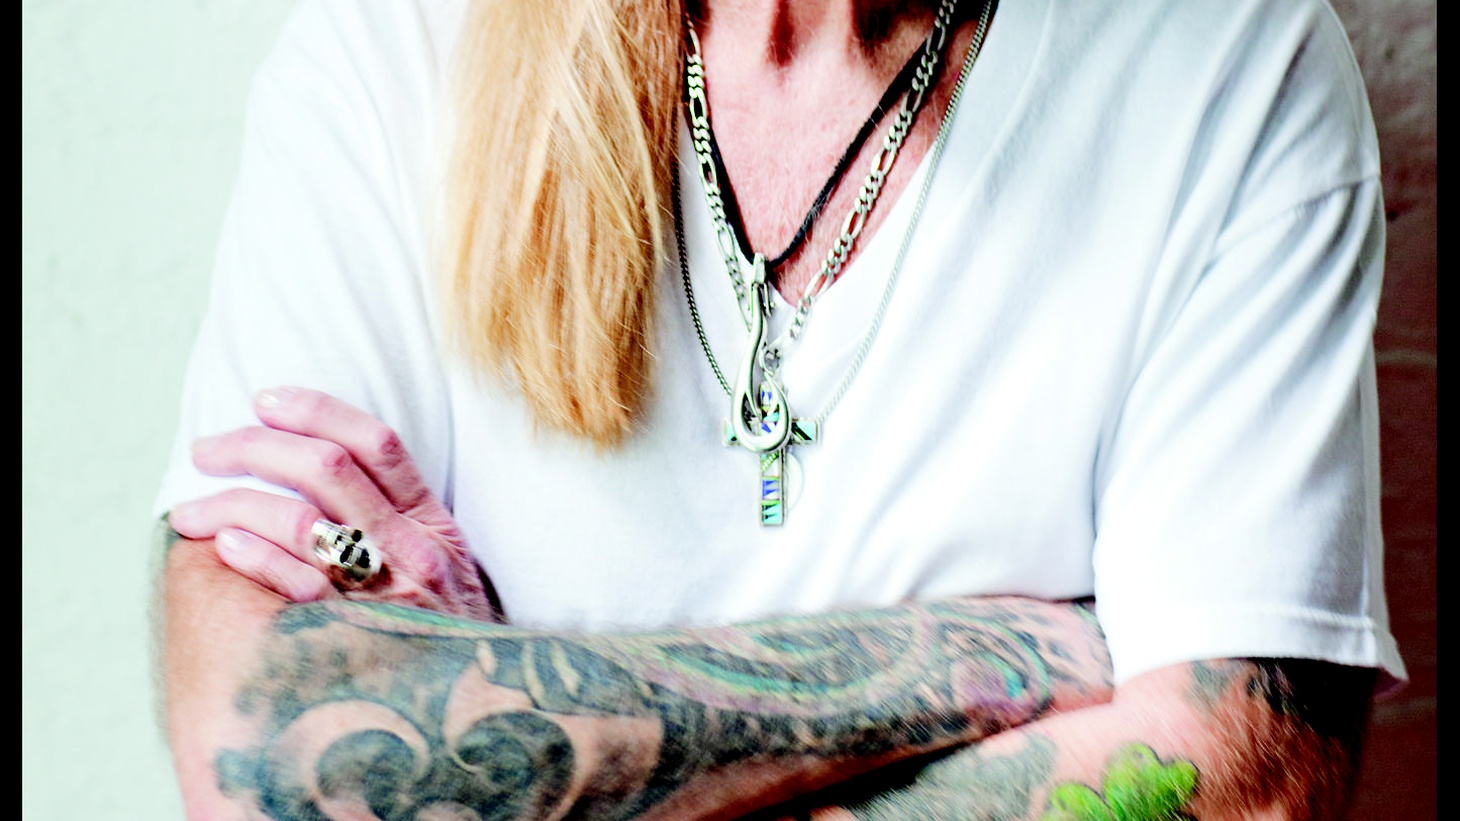 """Founding member of the Allman Brothers Band, Gregg Allman is back with Low Country Blues, his first solo recording in over a dozen years. Produced by T Bone Burnett, Allman puts his own stamp on a genre he loves -- the Blues. Today's Top Tune was composed by Skip James in 1931 it's """"Devil Got My Woman."""""""